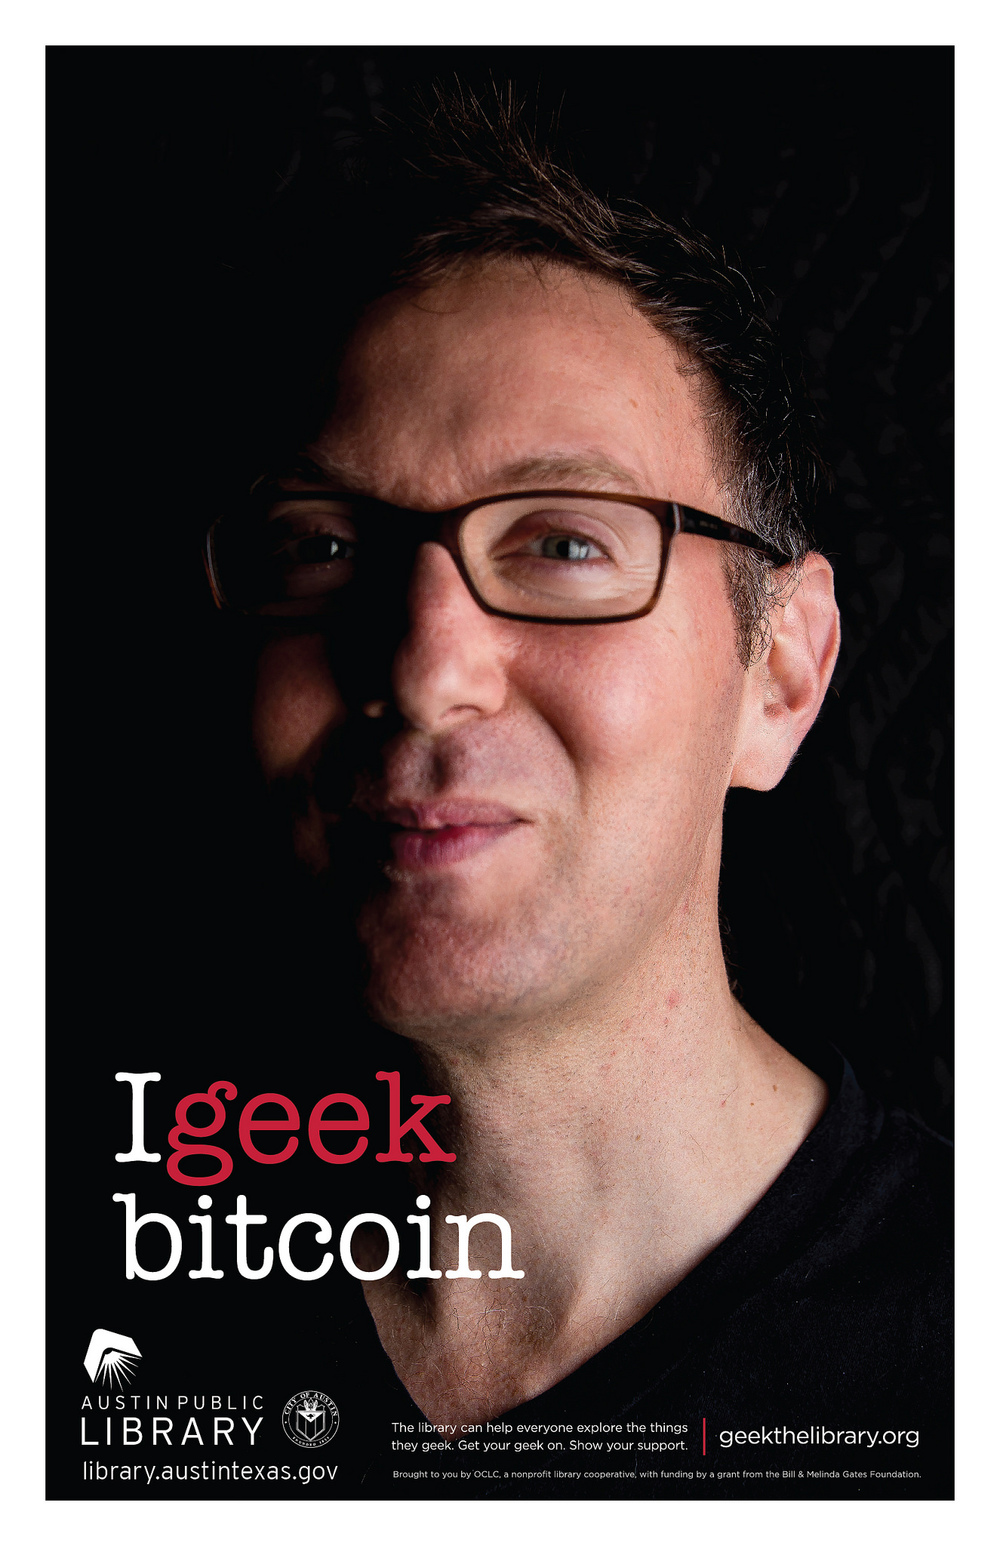 Bitcoin consultant Scott Rose geeking out for the Austin Public Library.